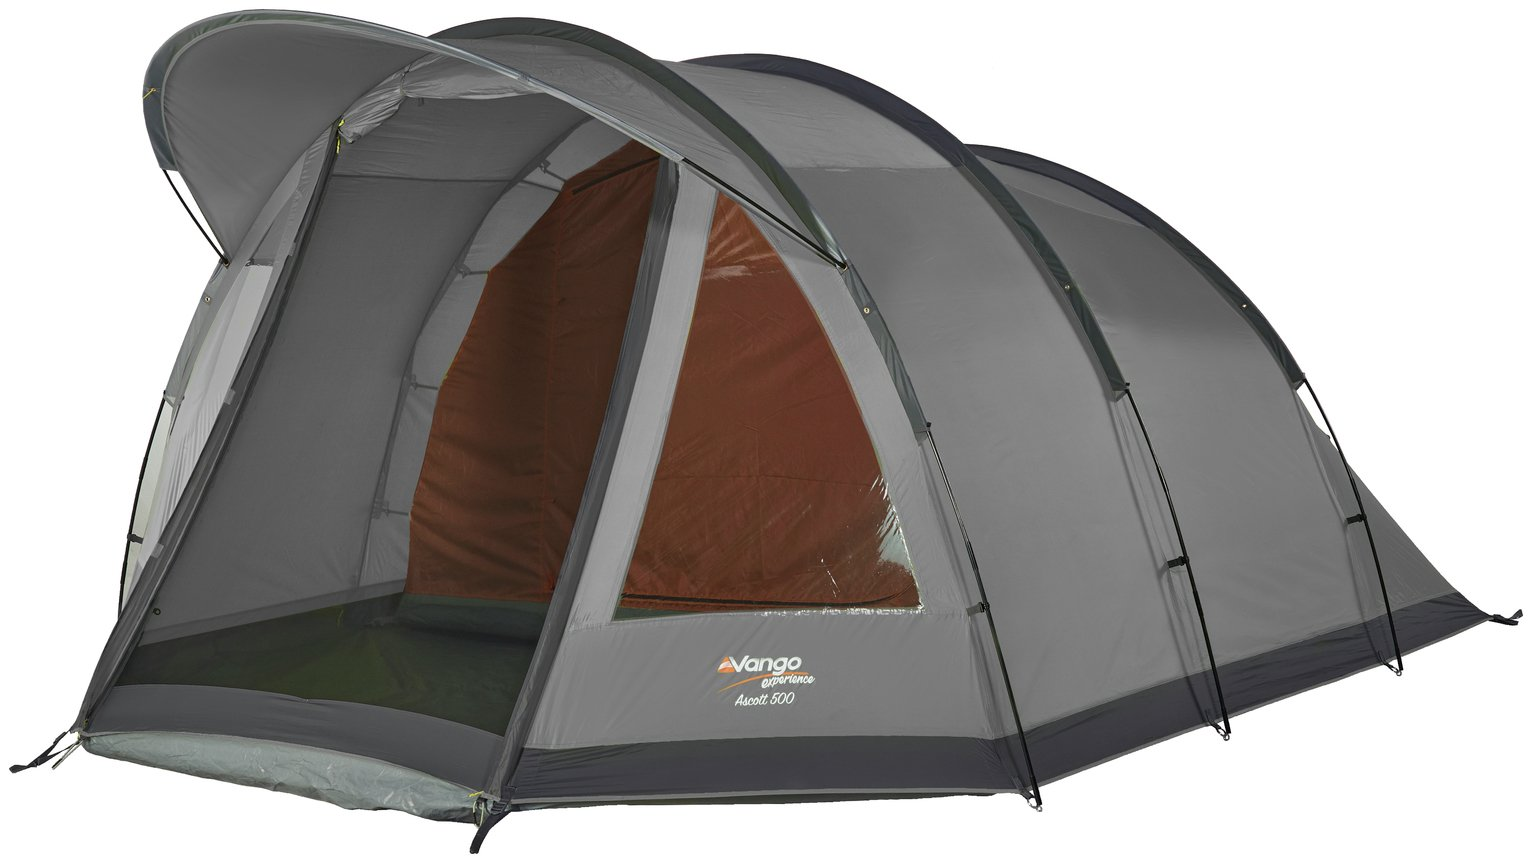 Vango Ascott 5 Person 2 Room Tent